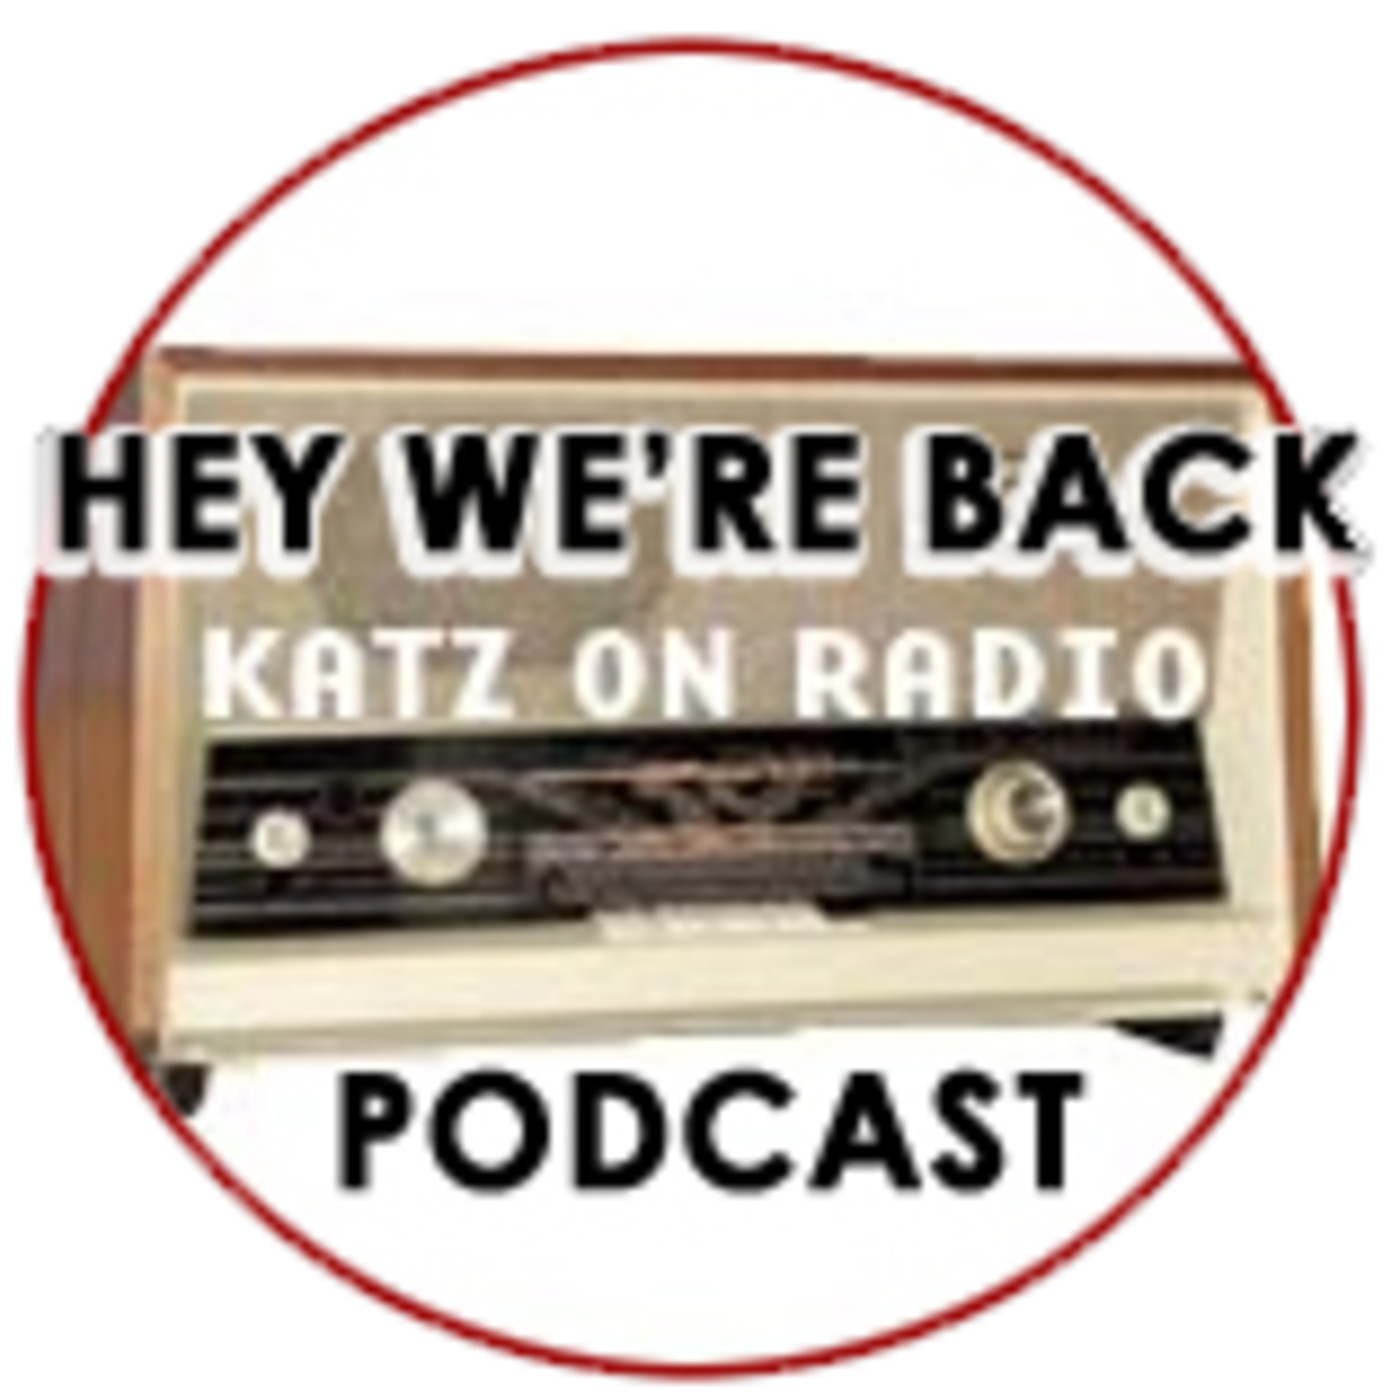 Hey We're Back! Podcast